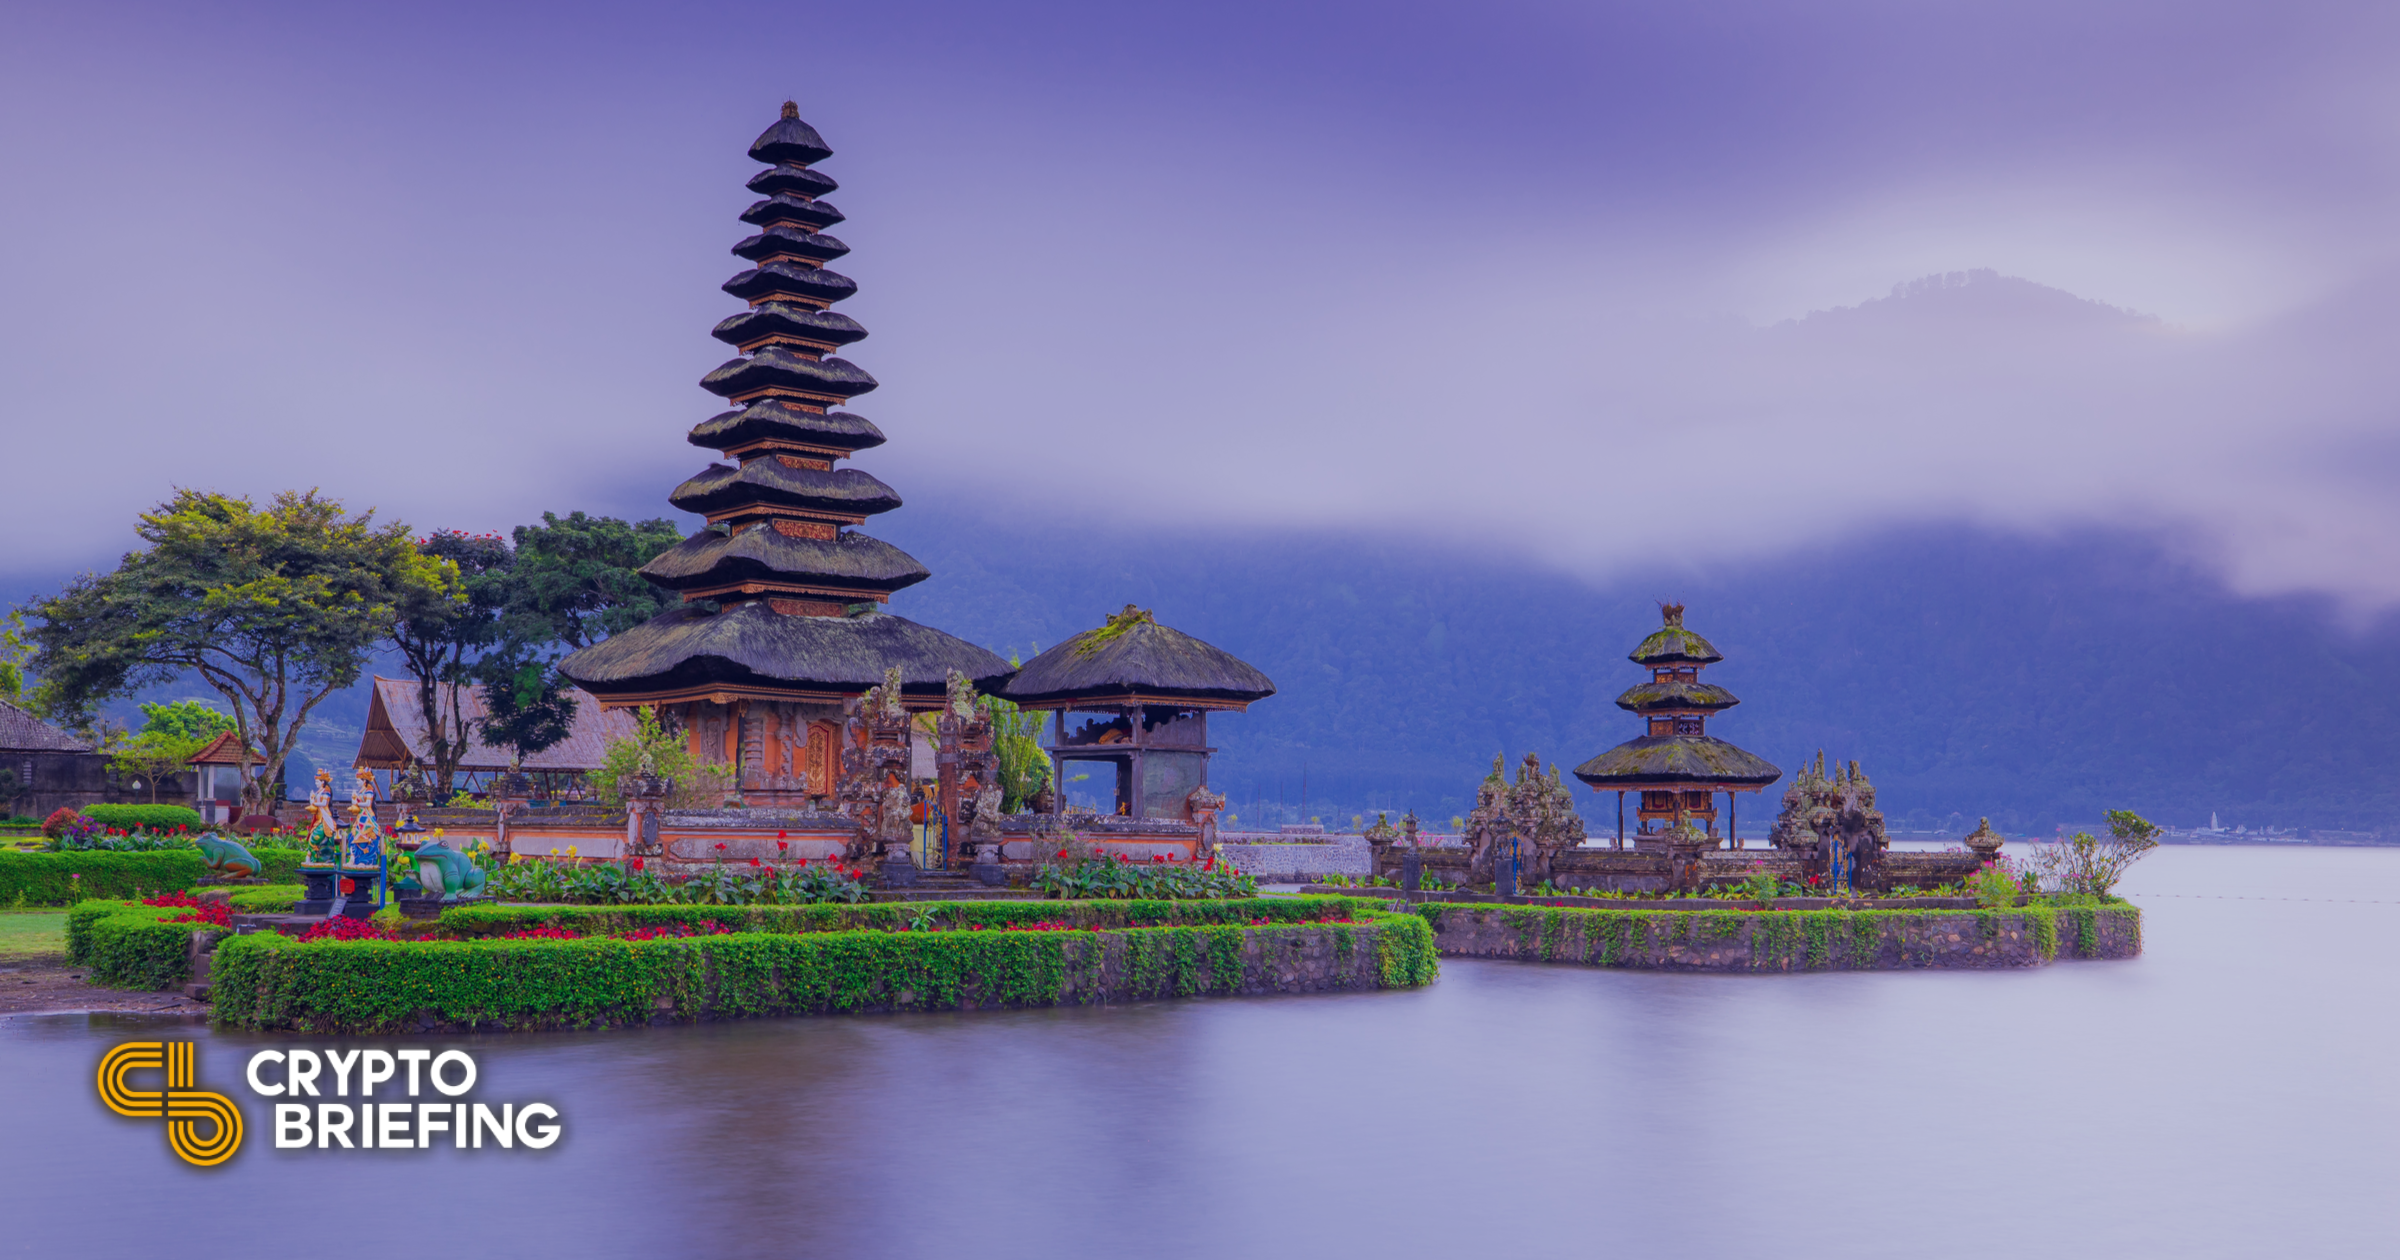 Indonesia to Launch Central Bank Digital Currency   Crypto Briefing